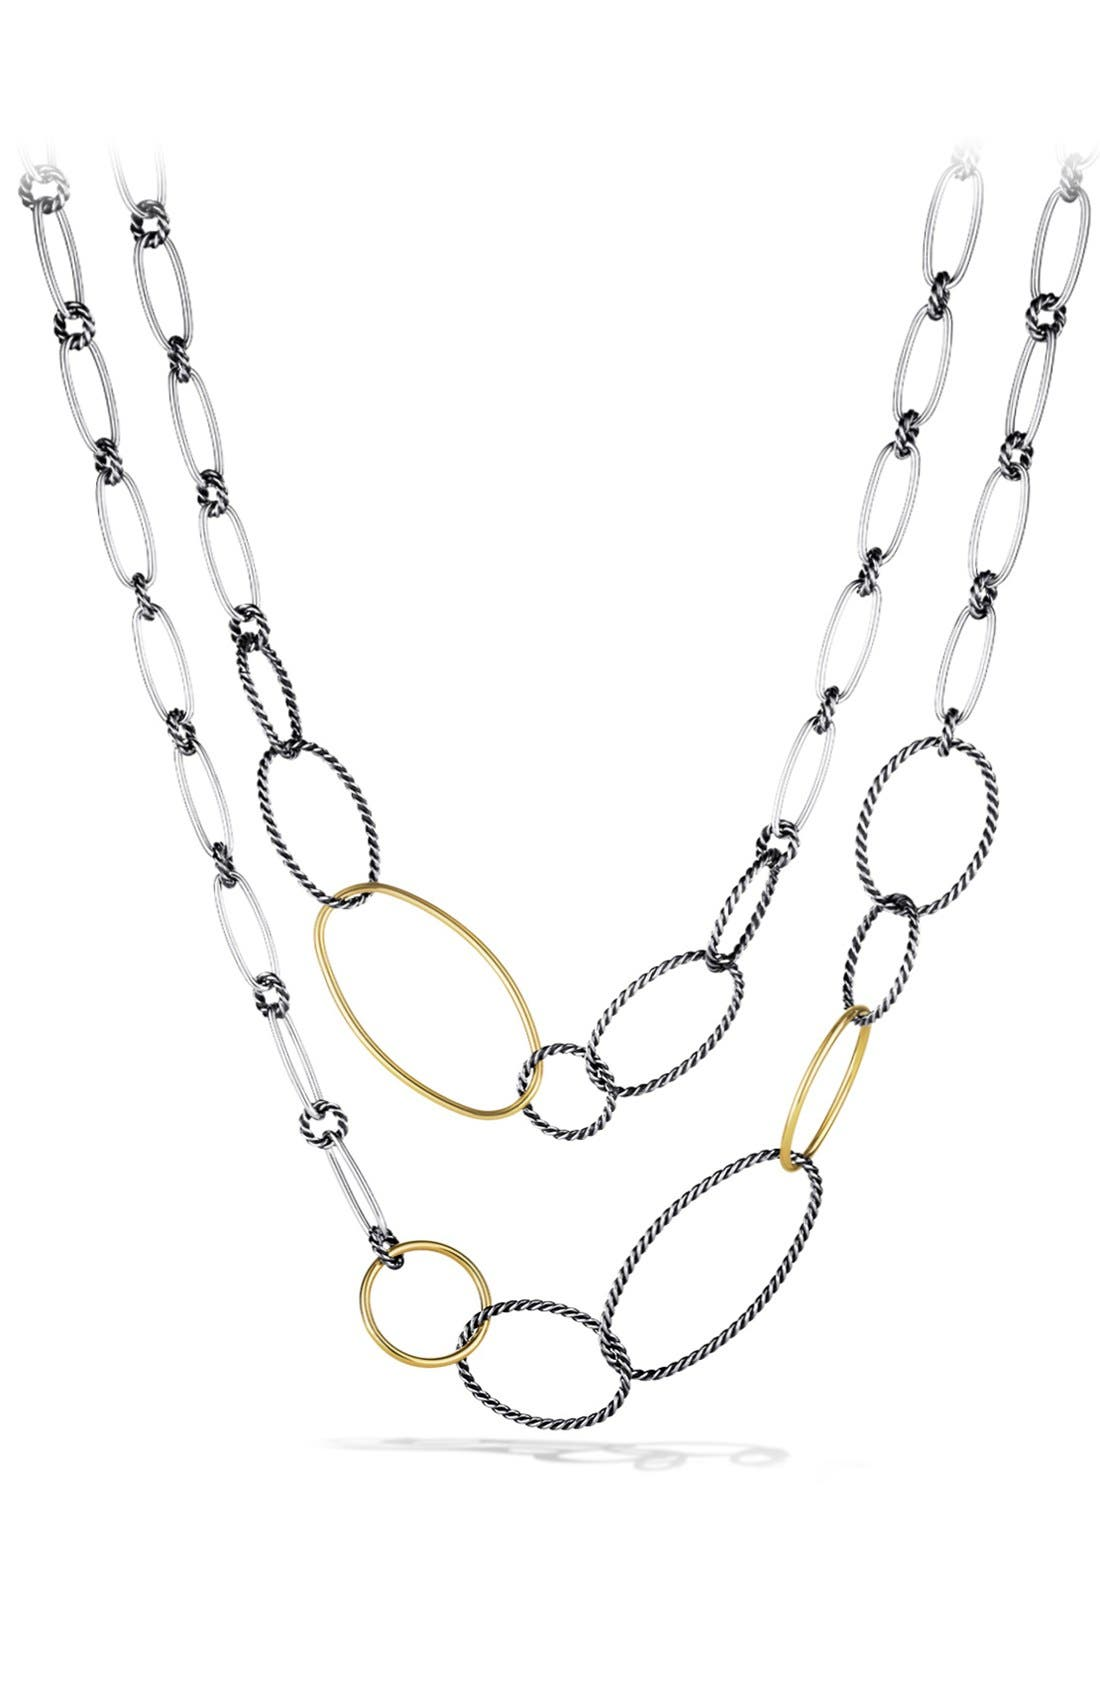 David Yurman 'Mobile' Link Necklace with Gold